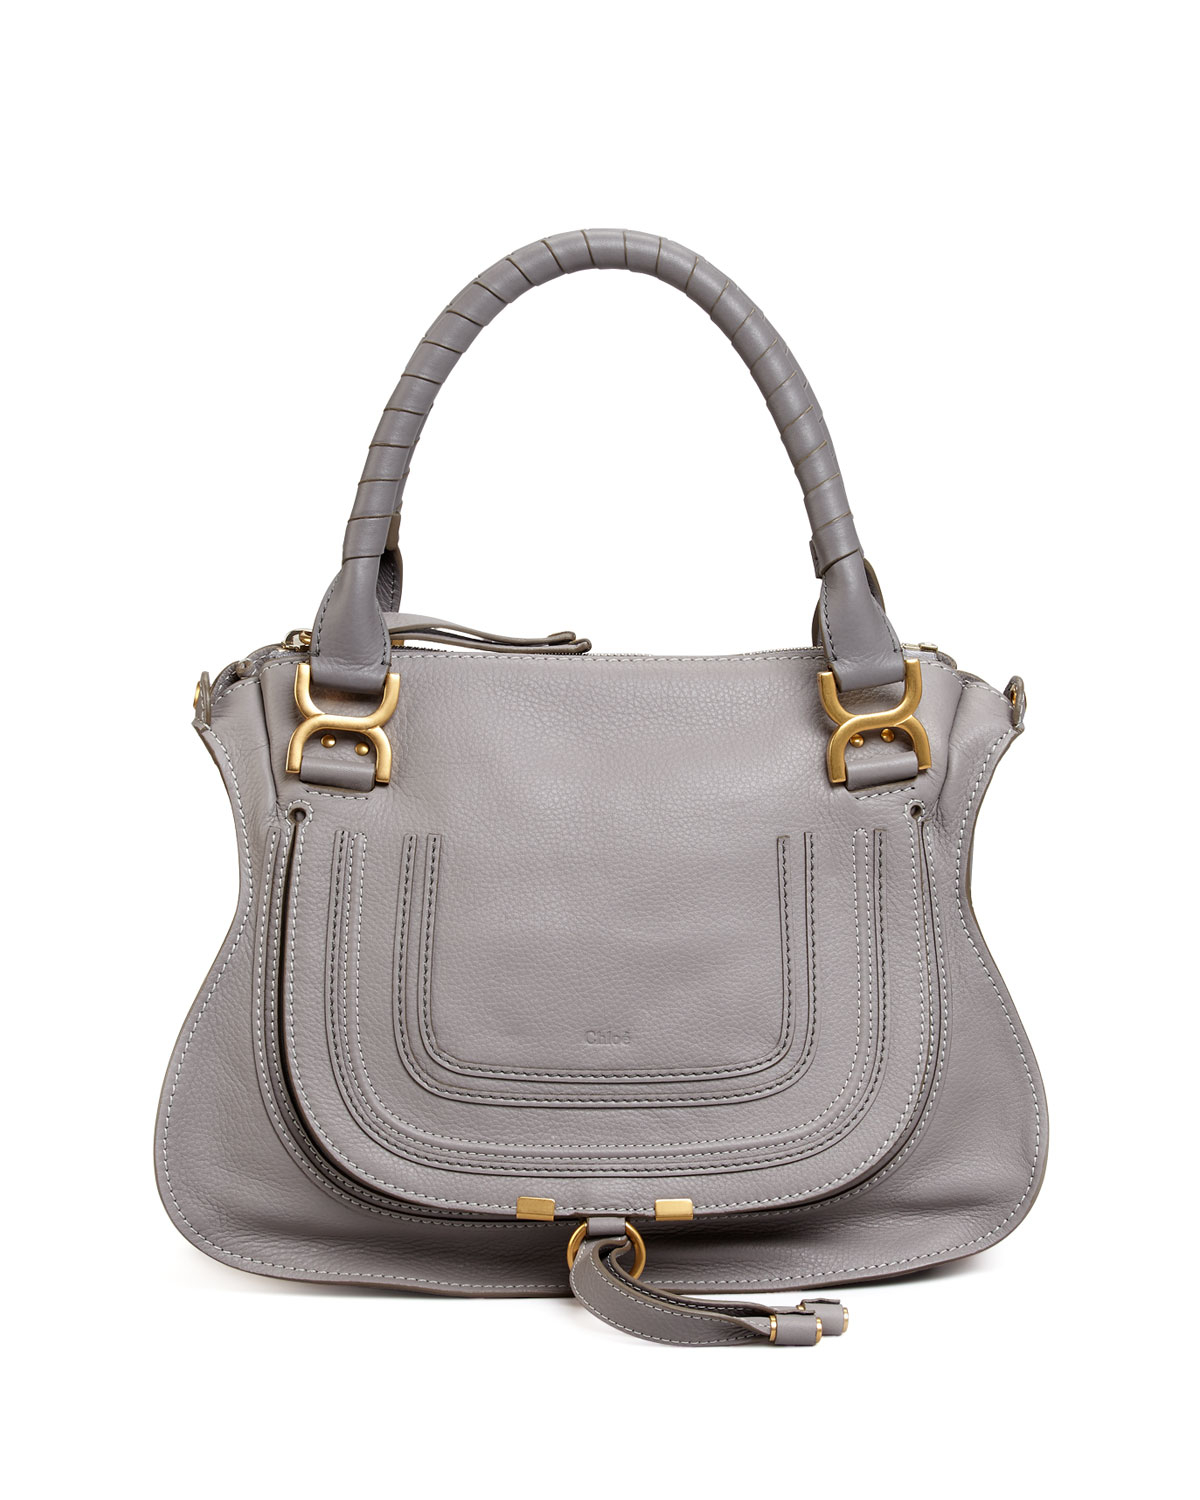 chlo marcie medium shoulder bag in gray lyst. Black Bedroom Furniture Sets. Home Design Ideas